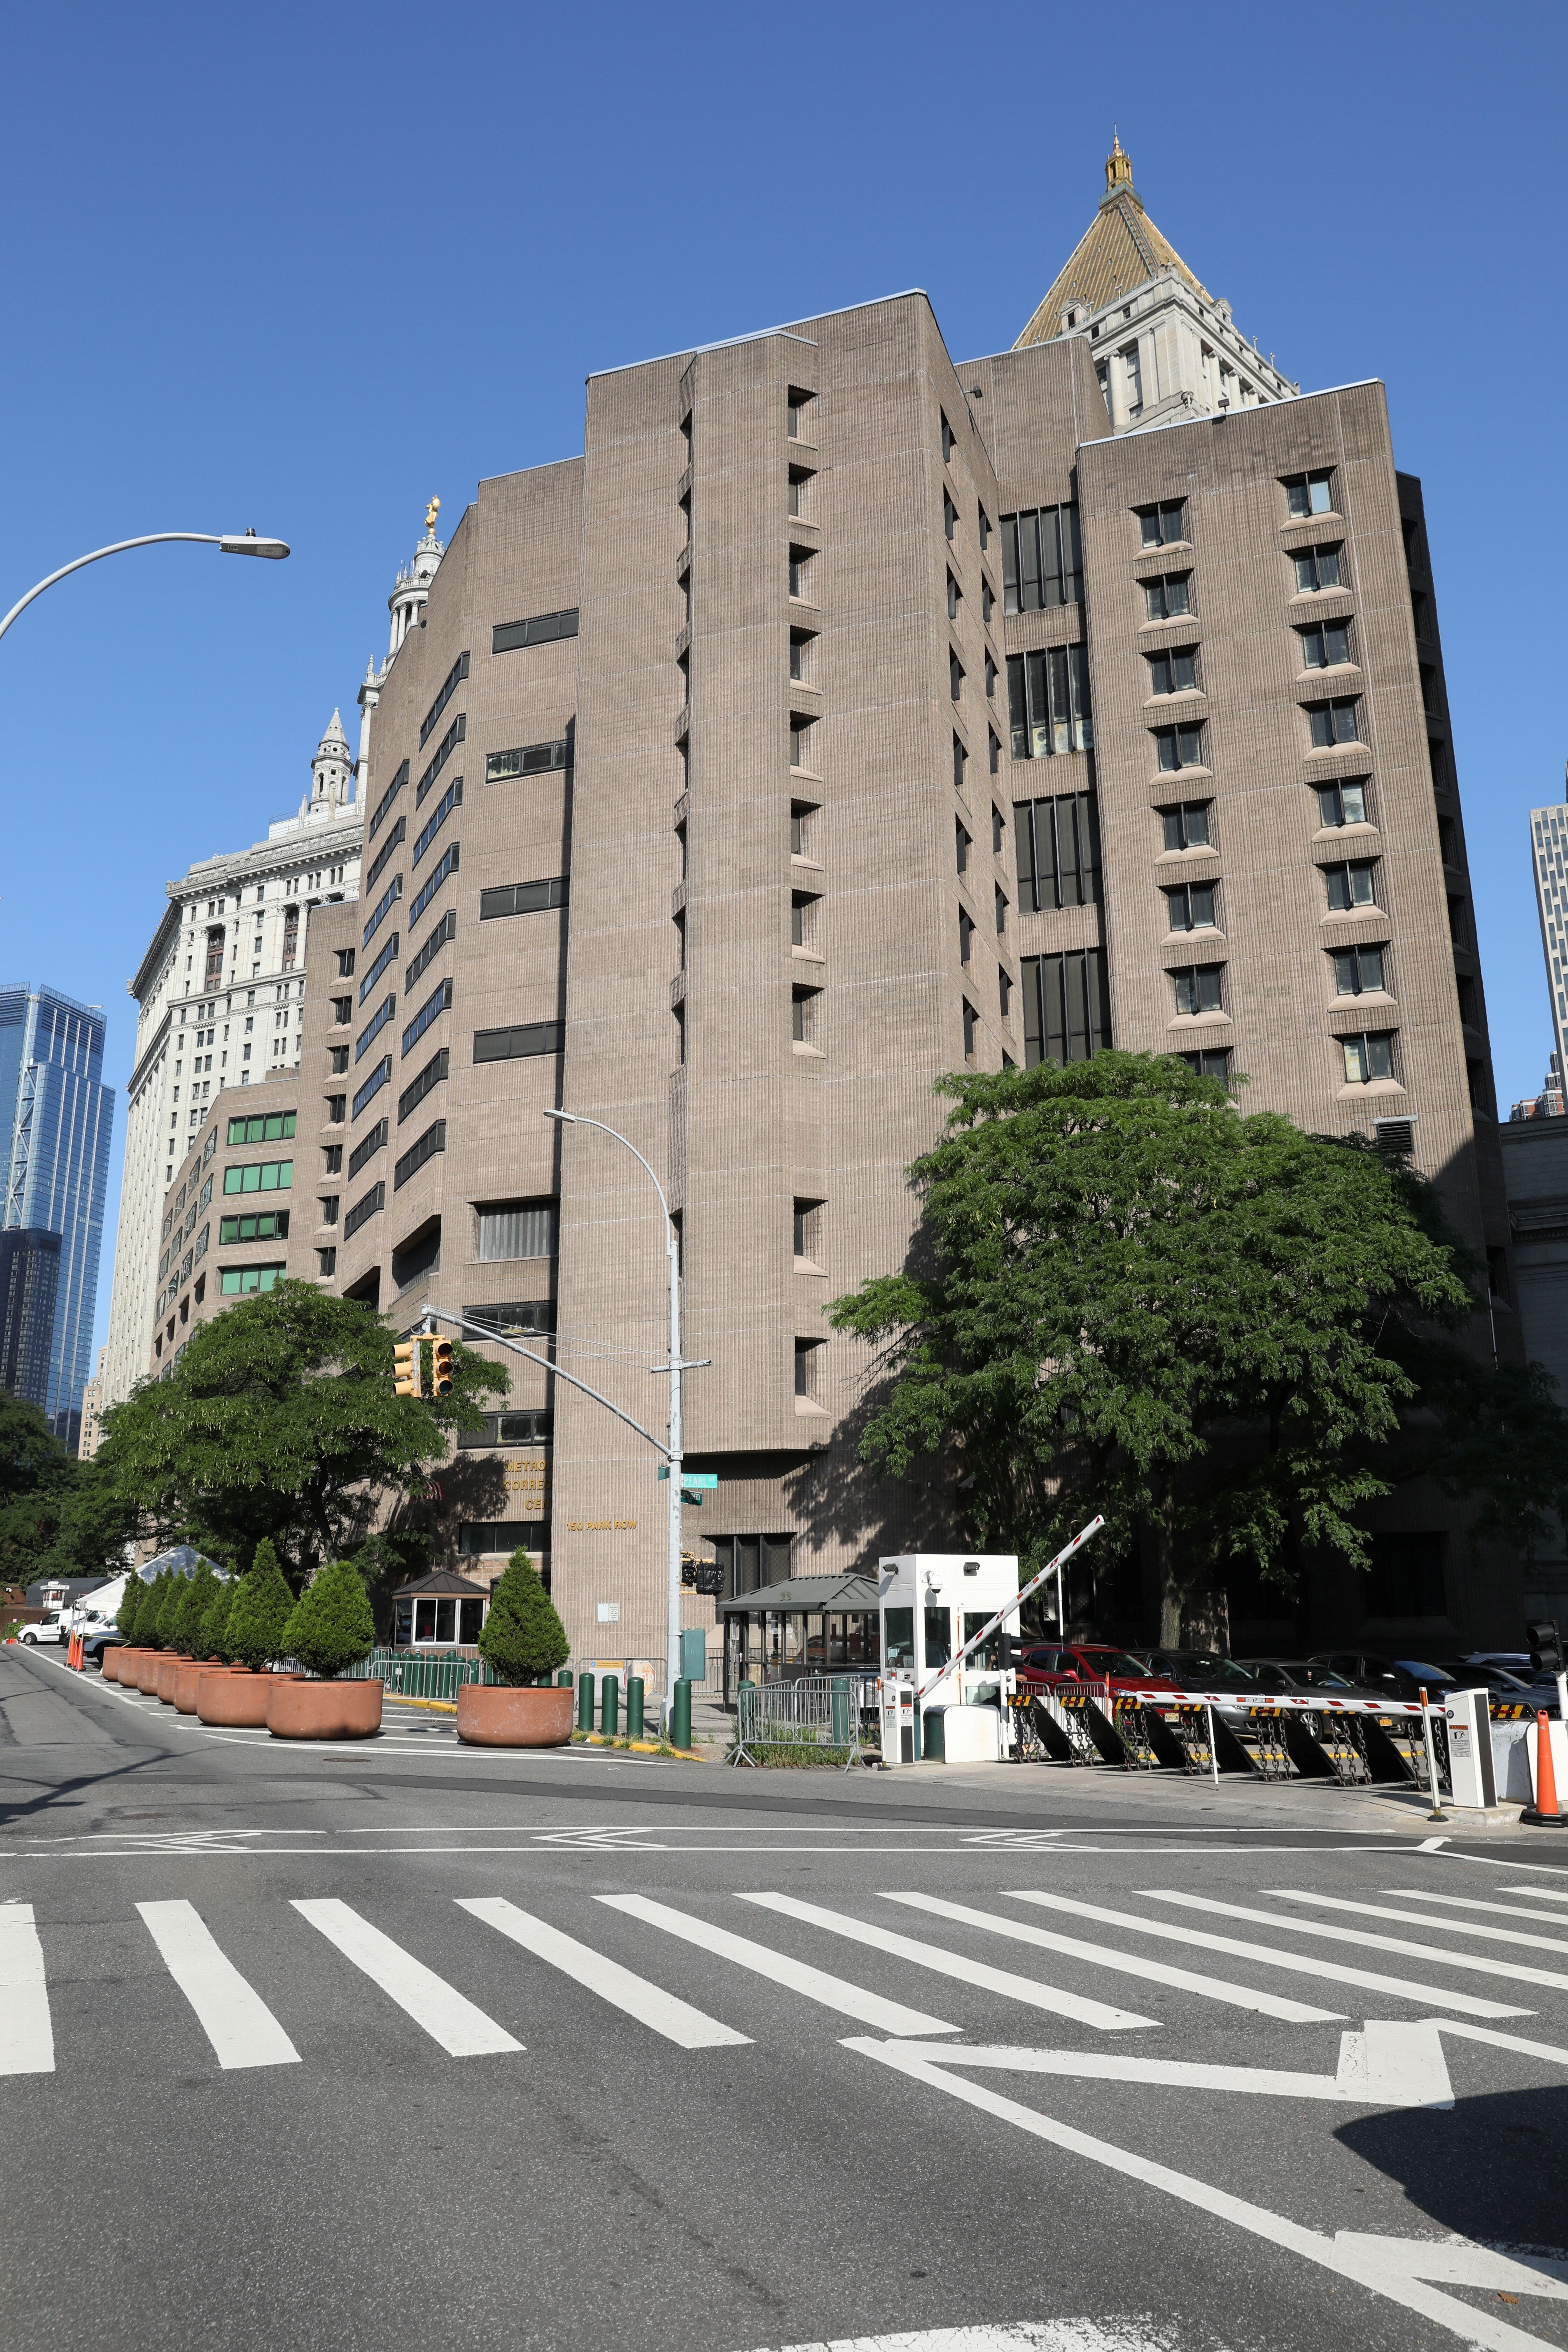 Epstein is being held at the Metropolitan Correctional Center in New York City. The 66-year-old was found unconscious with in